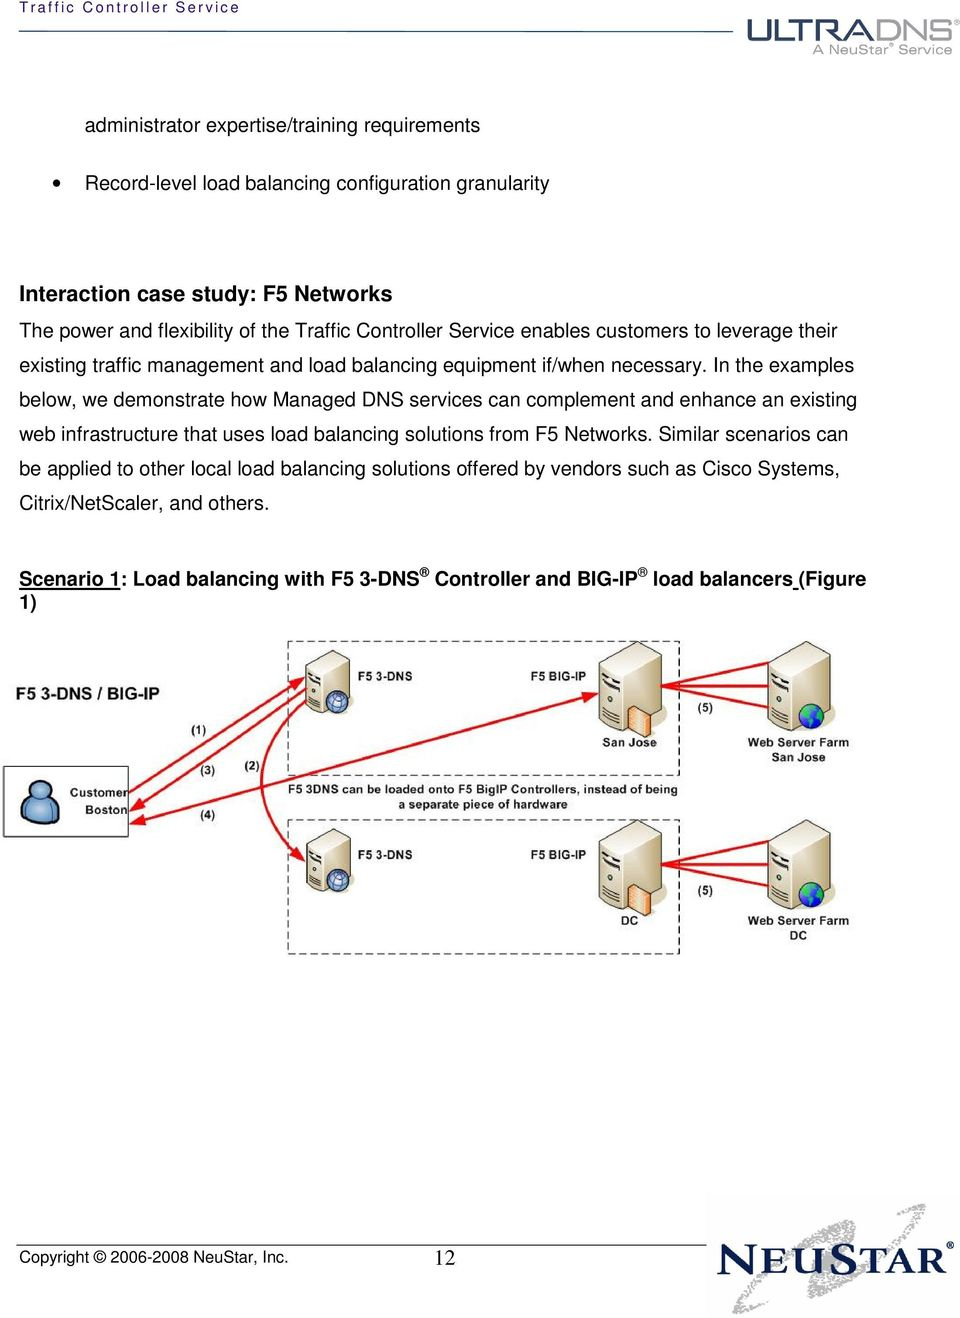 In the examples below, we demonstrate how Managed DNS services can complement and enhance an existing web infrastructure that uses load balancing solutions from F5 Networks.